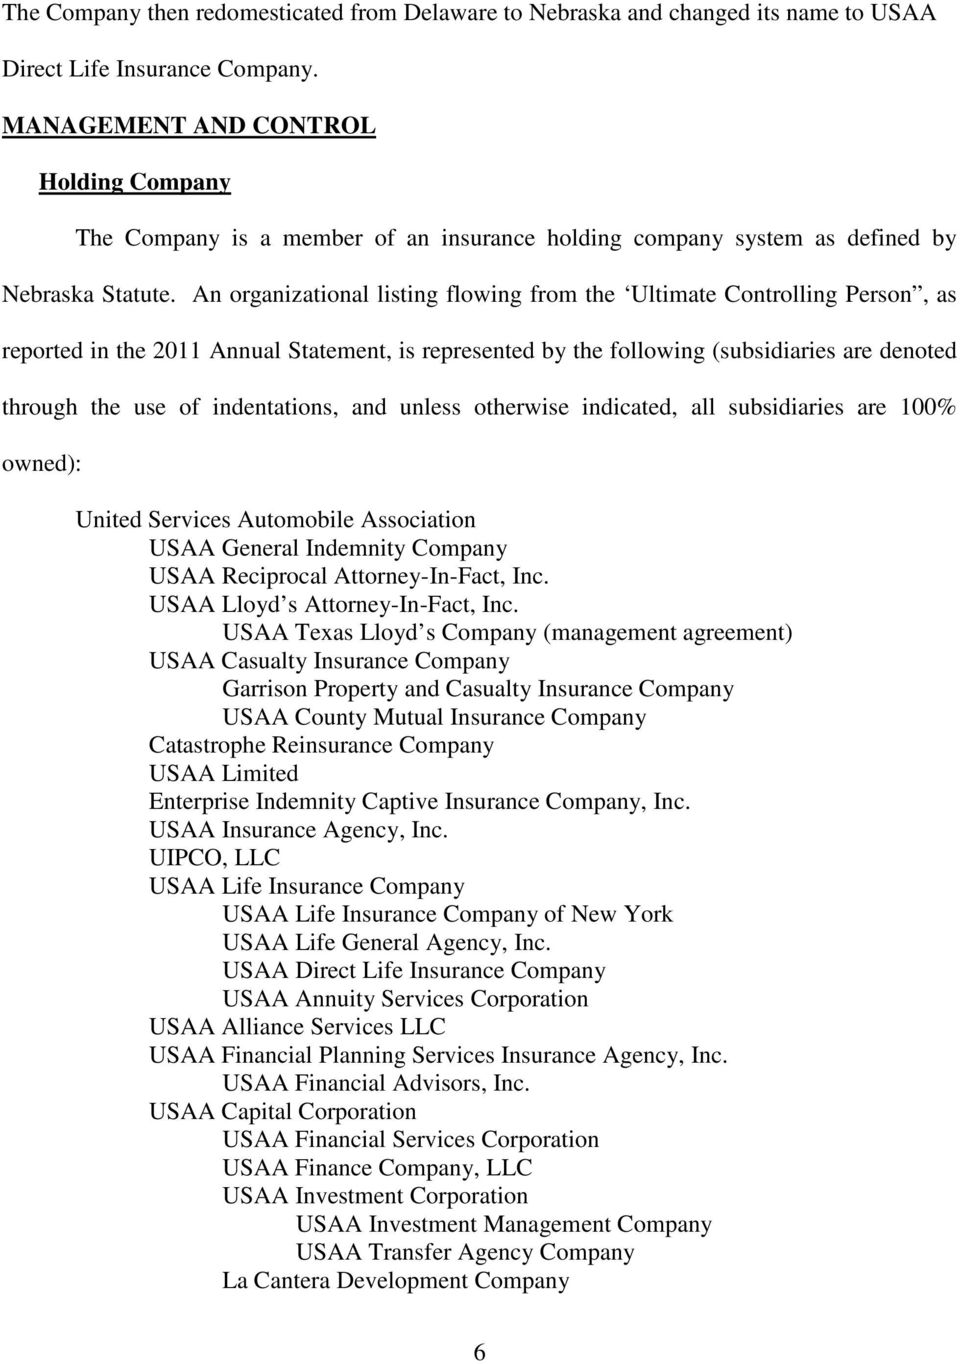 An organizational listing flowing from the Ultimate Controlling Person, as reported in the 2011 Annual Statement, is represented by the following (subsidiaries are denoted through the use of